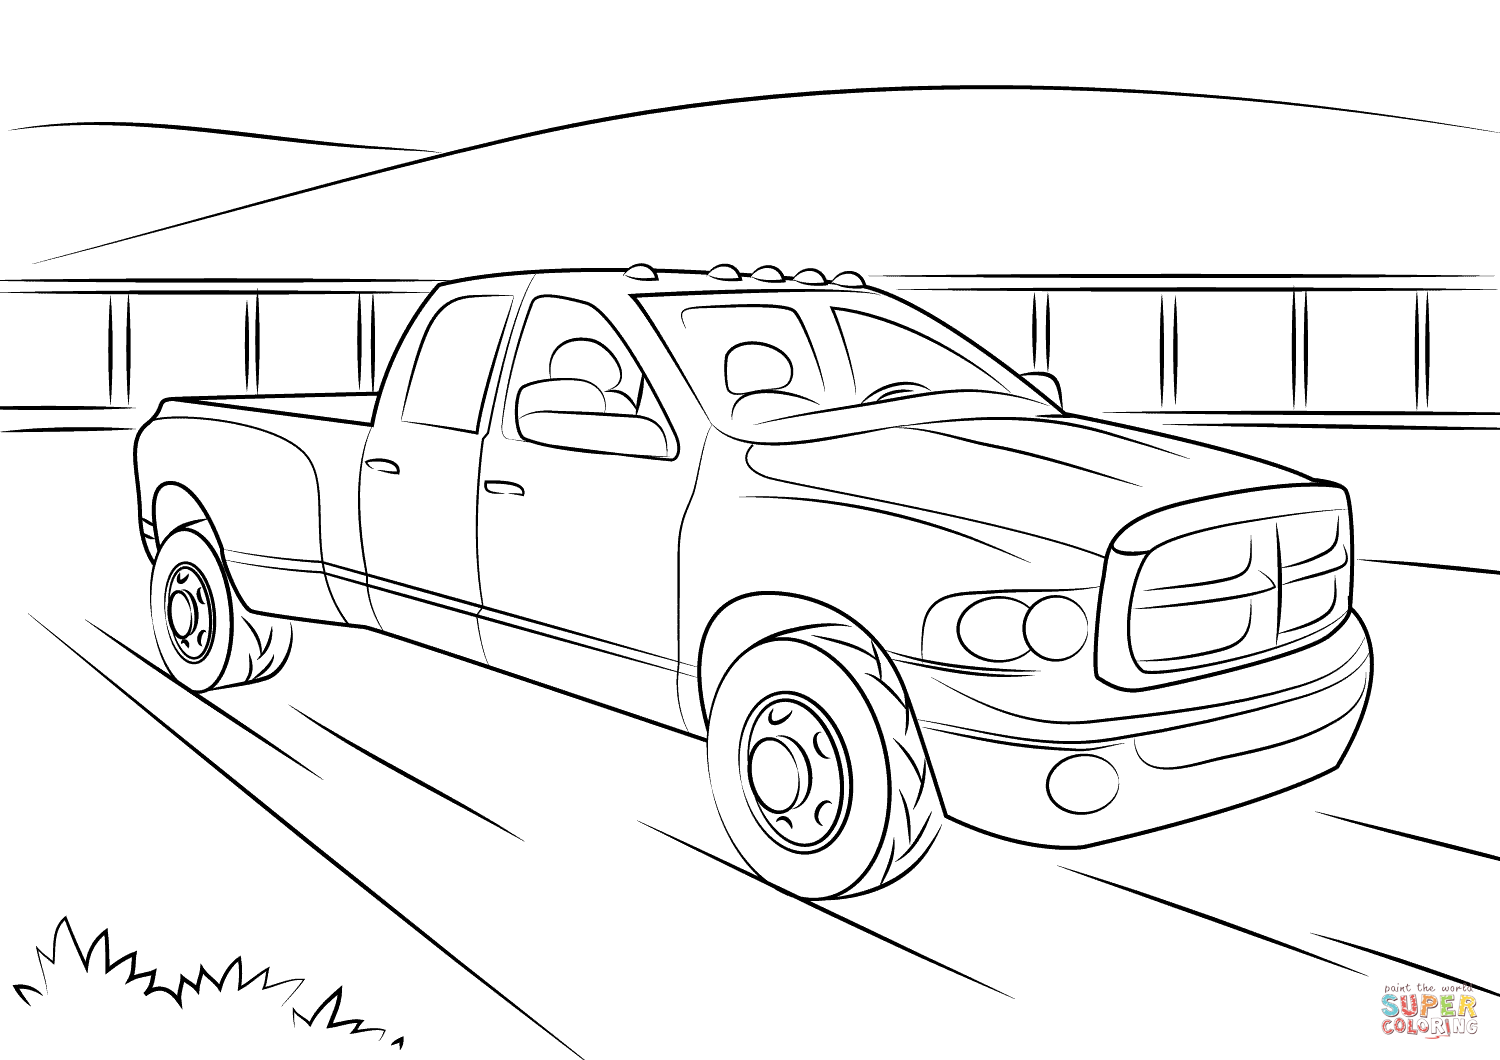 Dodge Jacked Up Truck Coloring Pages Automotive News